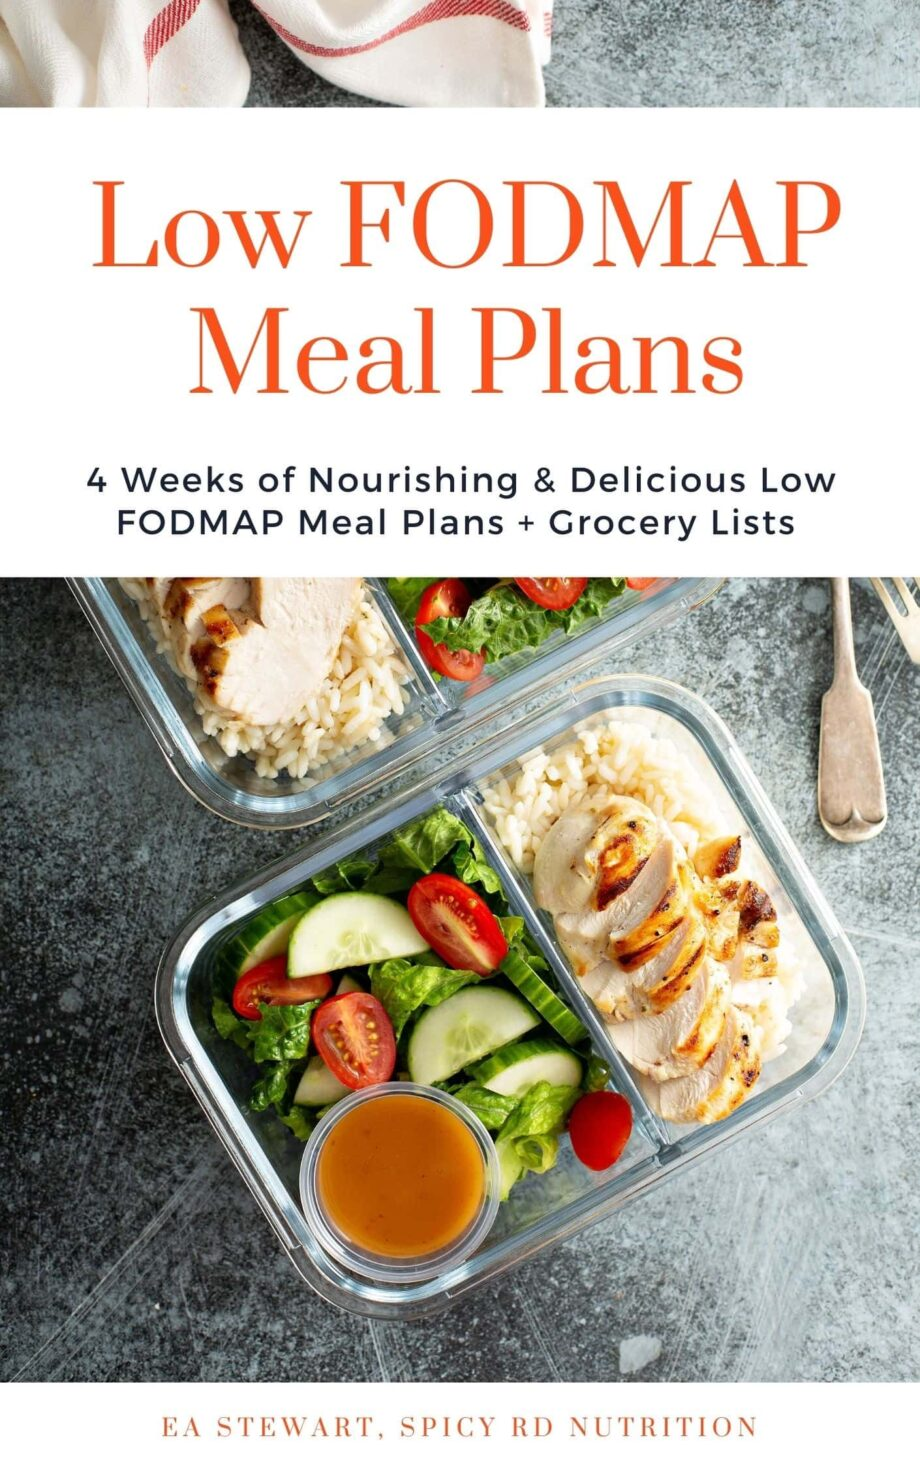 Low FODMAP Meal Plans cover page with glass container of food.